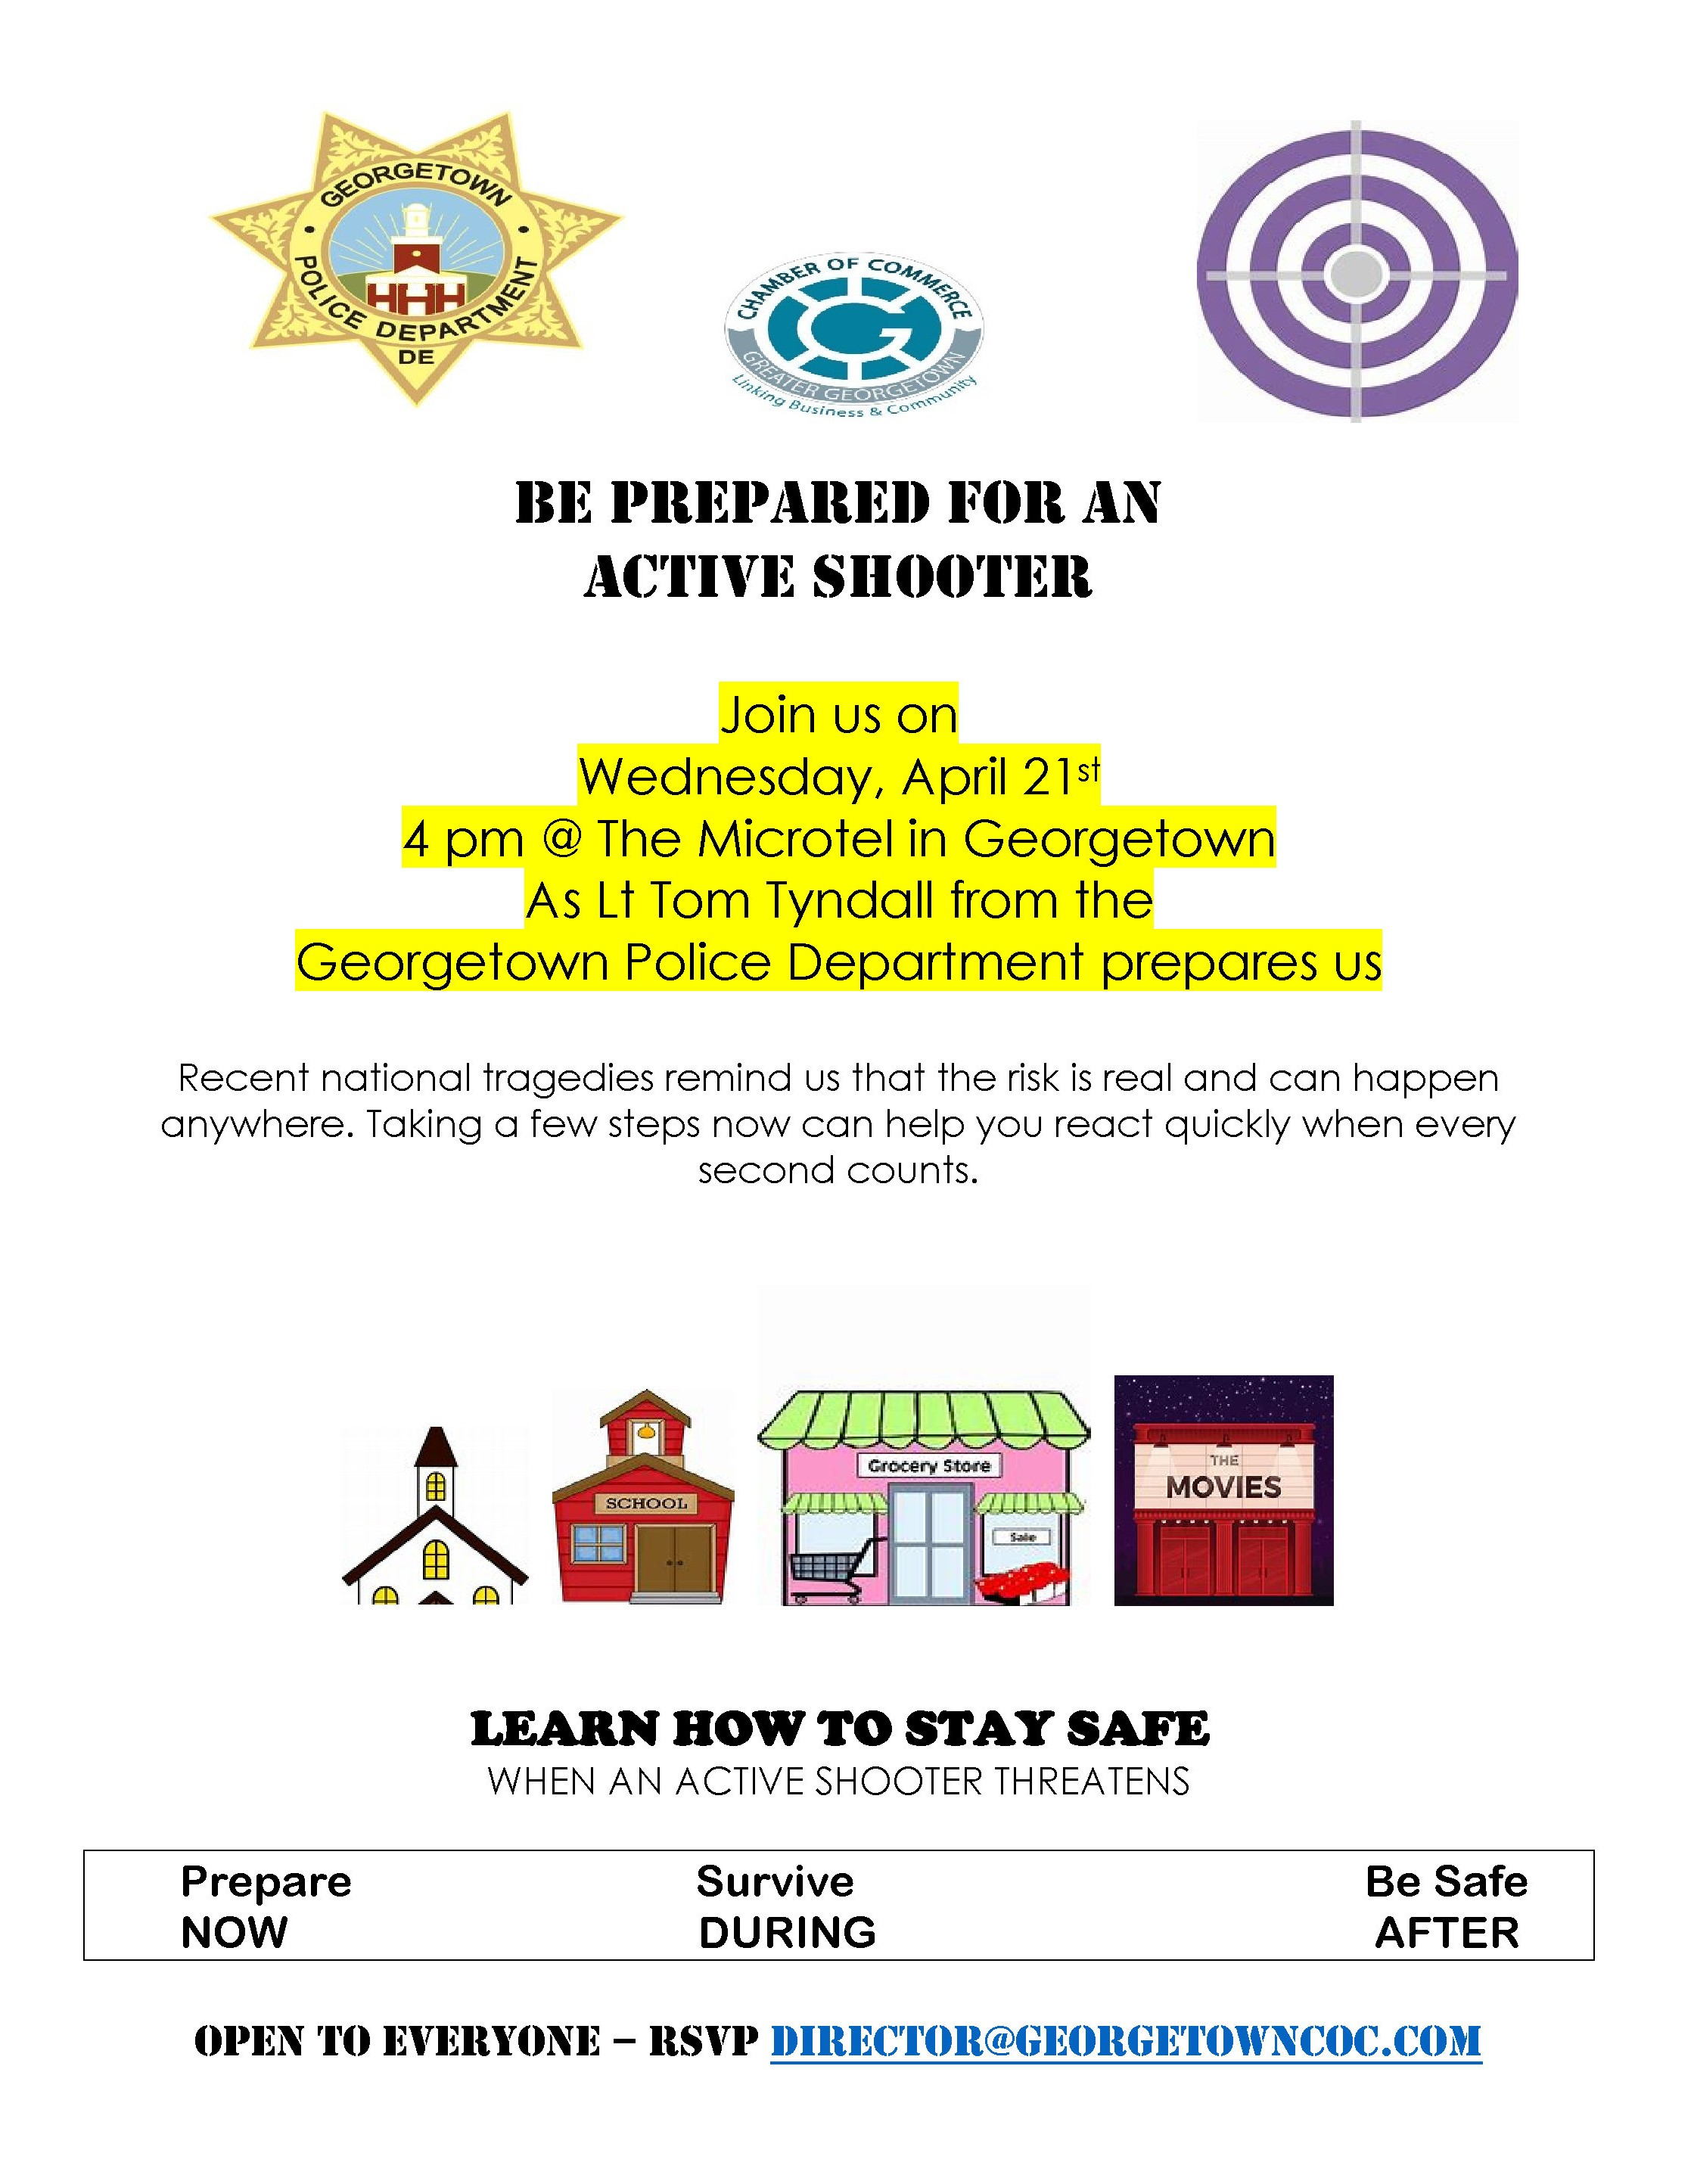 Be Prepared for an Active Shooter